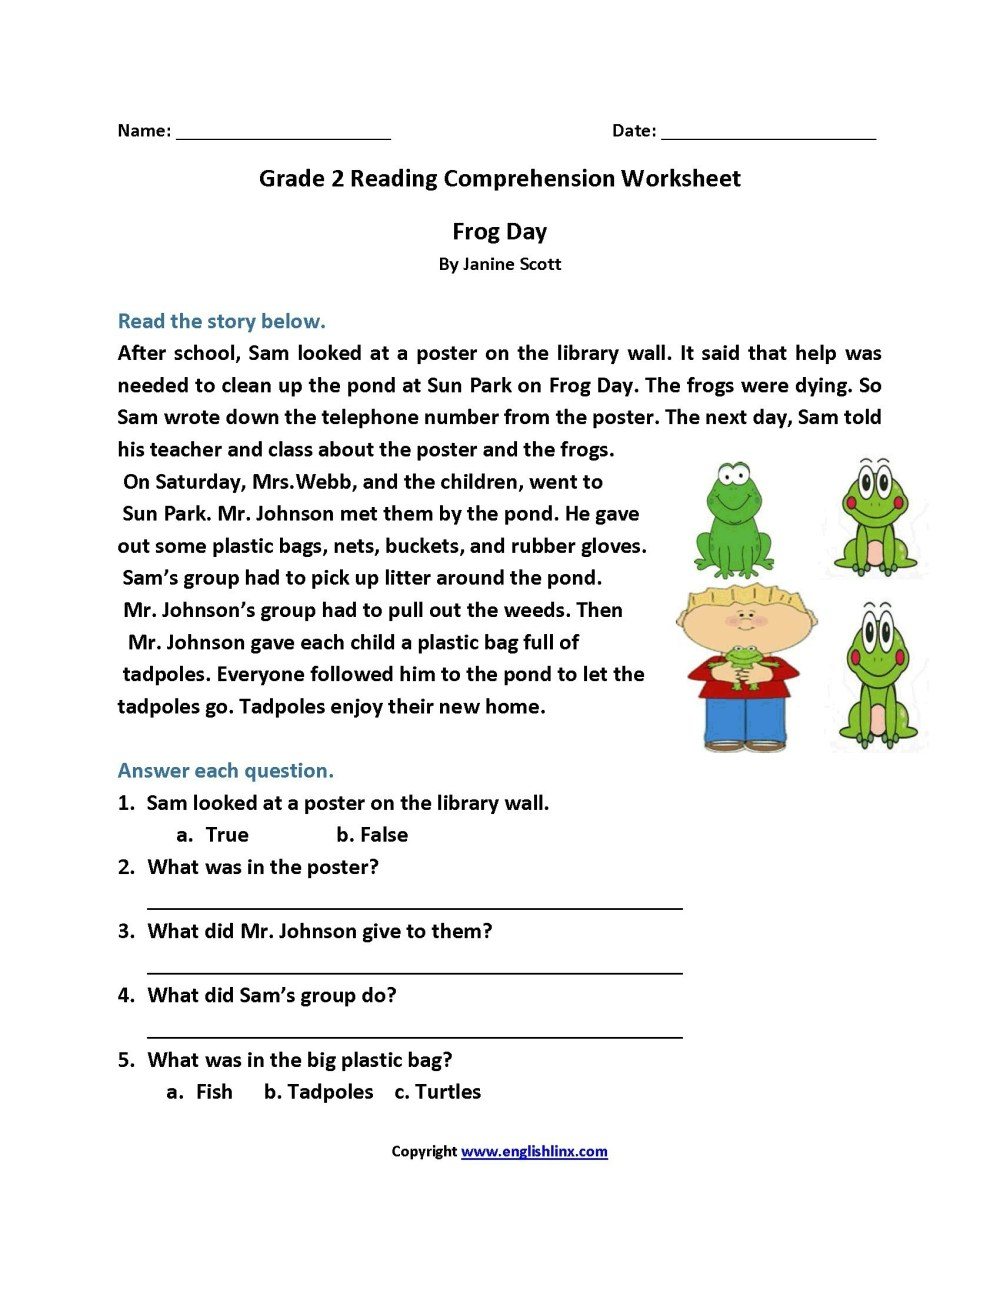 medium resolution of 4th Grade Reading Comprehension Worksheets   Printable Worksheets and  Activities for Teachers